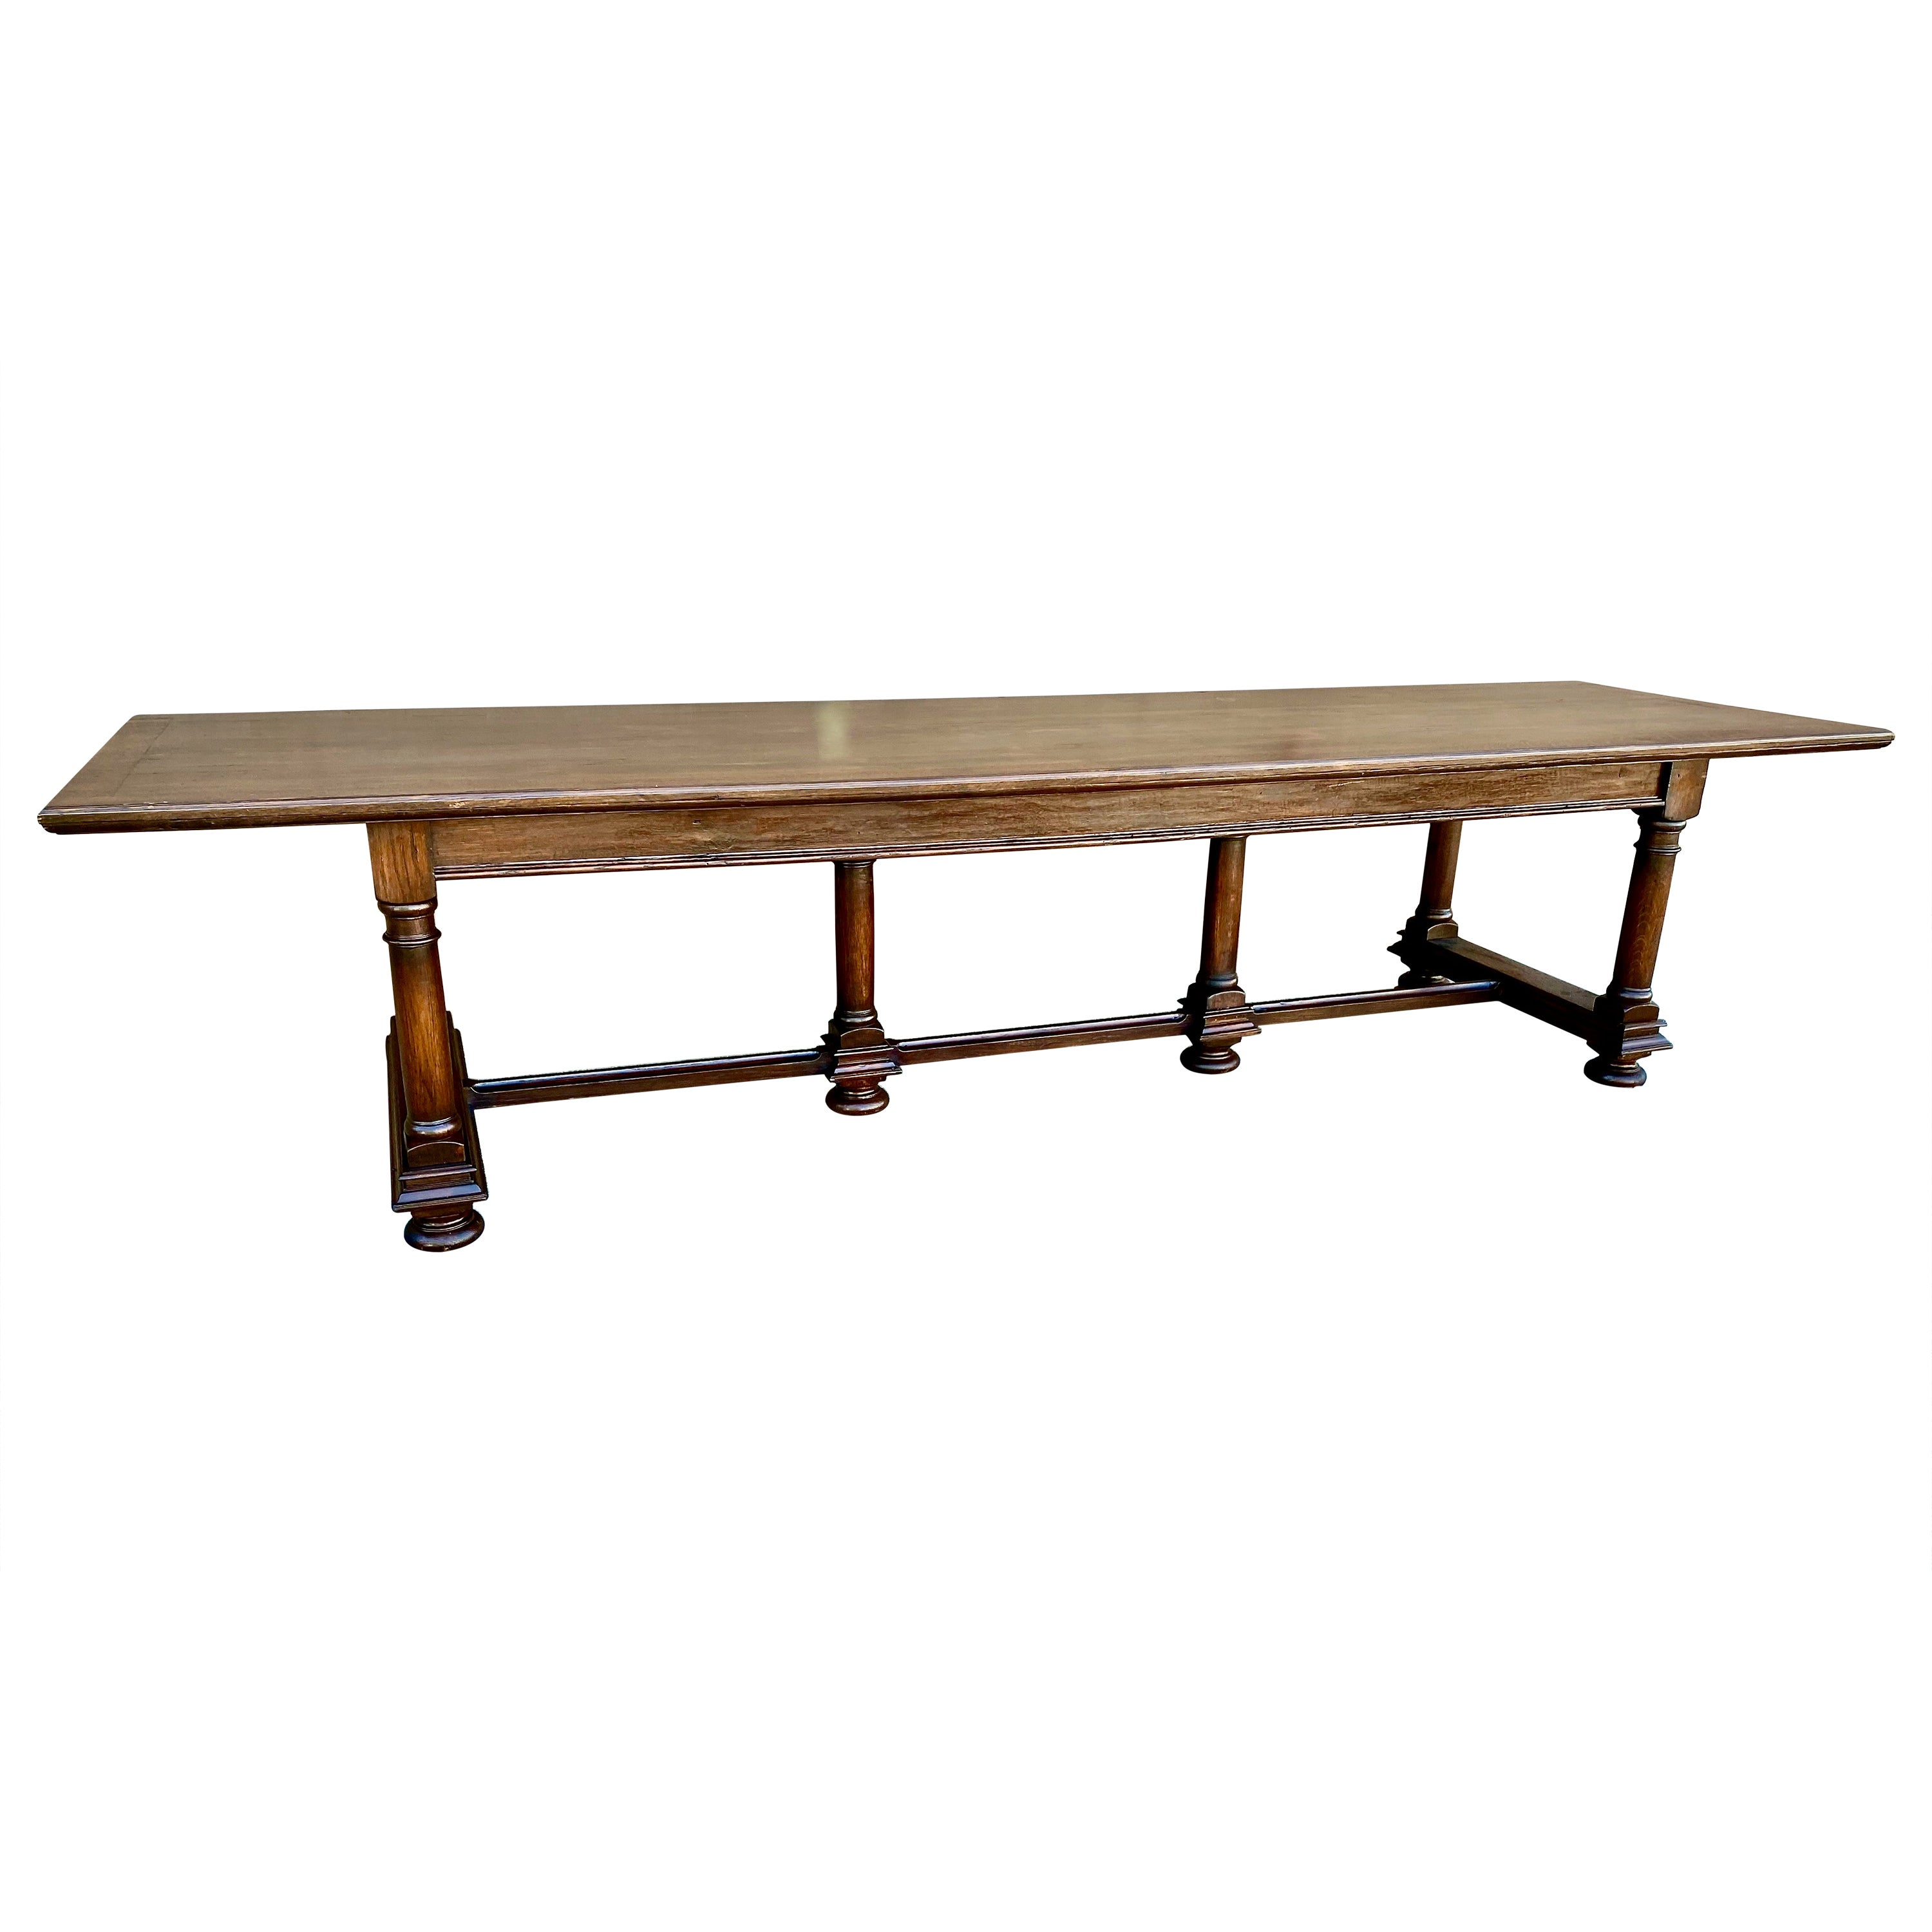 Baroque-Style Refectory Table